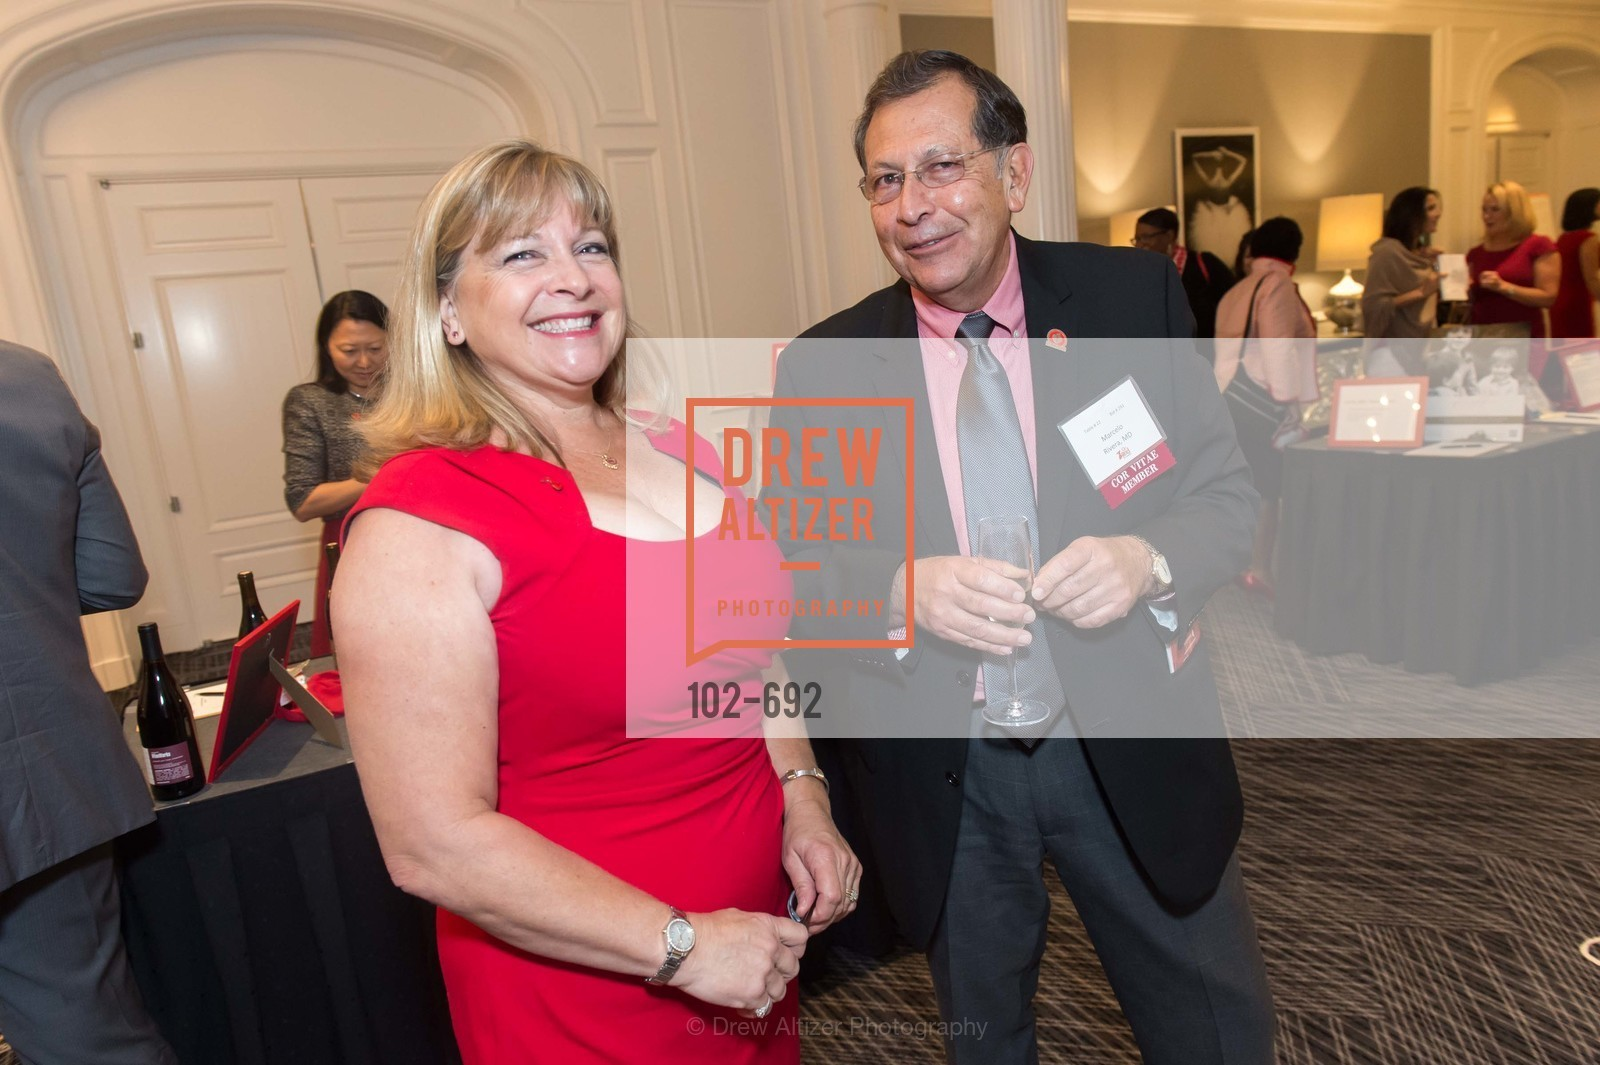 Nancy Pinner, Marcelo Rivera, 2015 GoRed for Women Luncheon, US, May 2nd, 2015,Drew Altizer, Drew Altizer Photography, full-service agency, private events, San Francisco photographer, photographer california